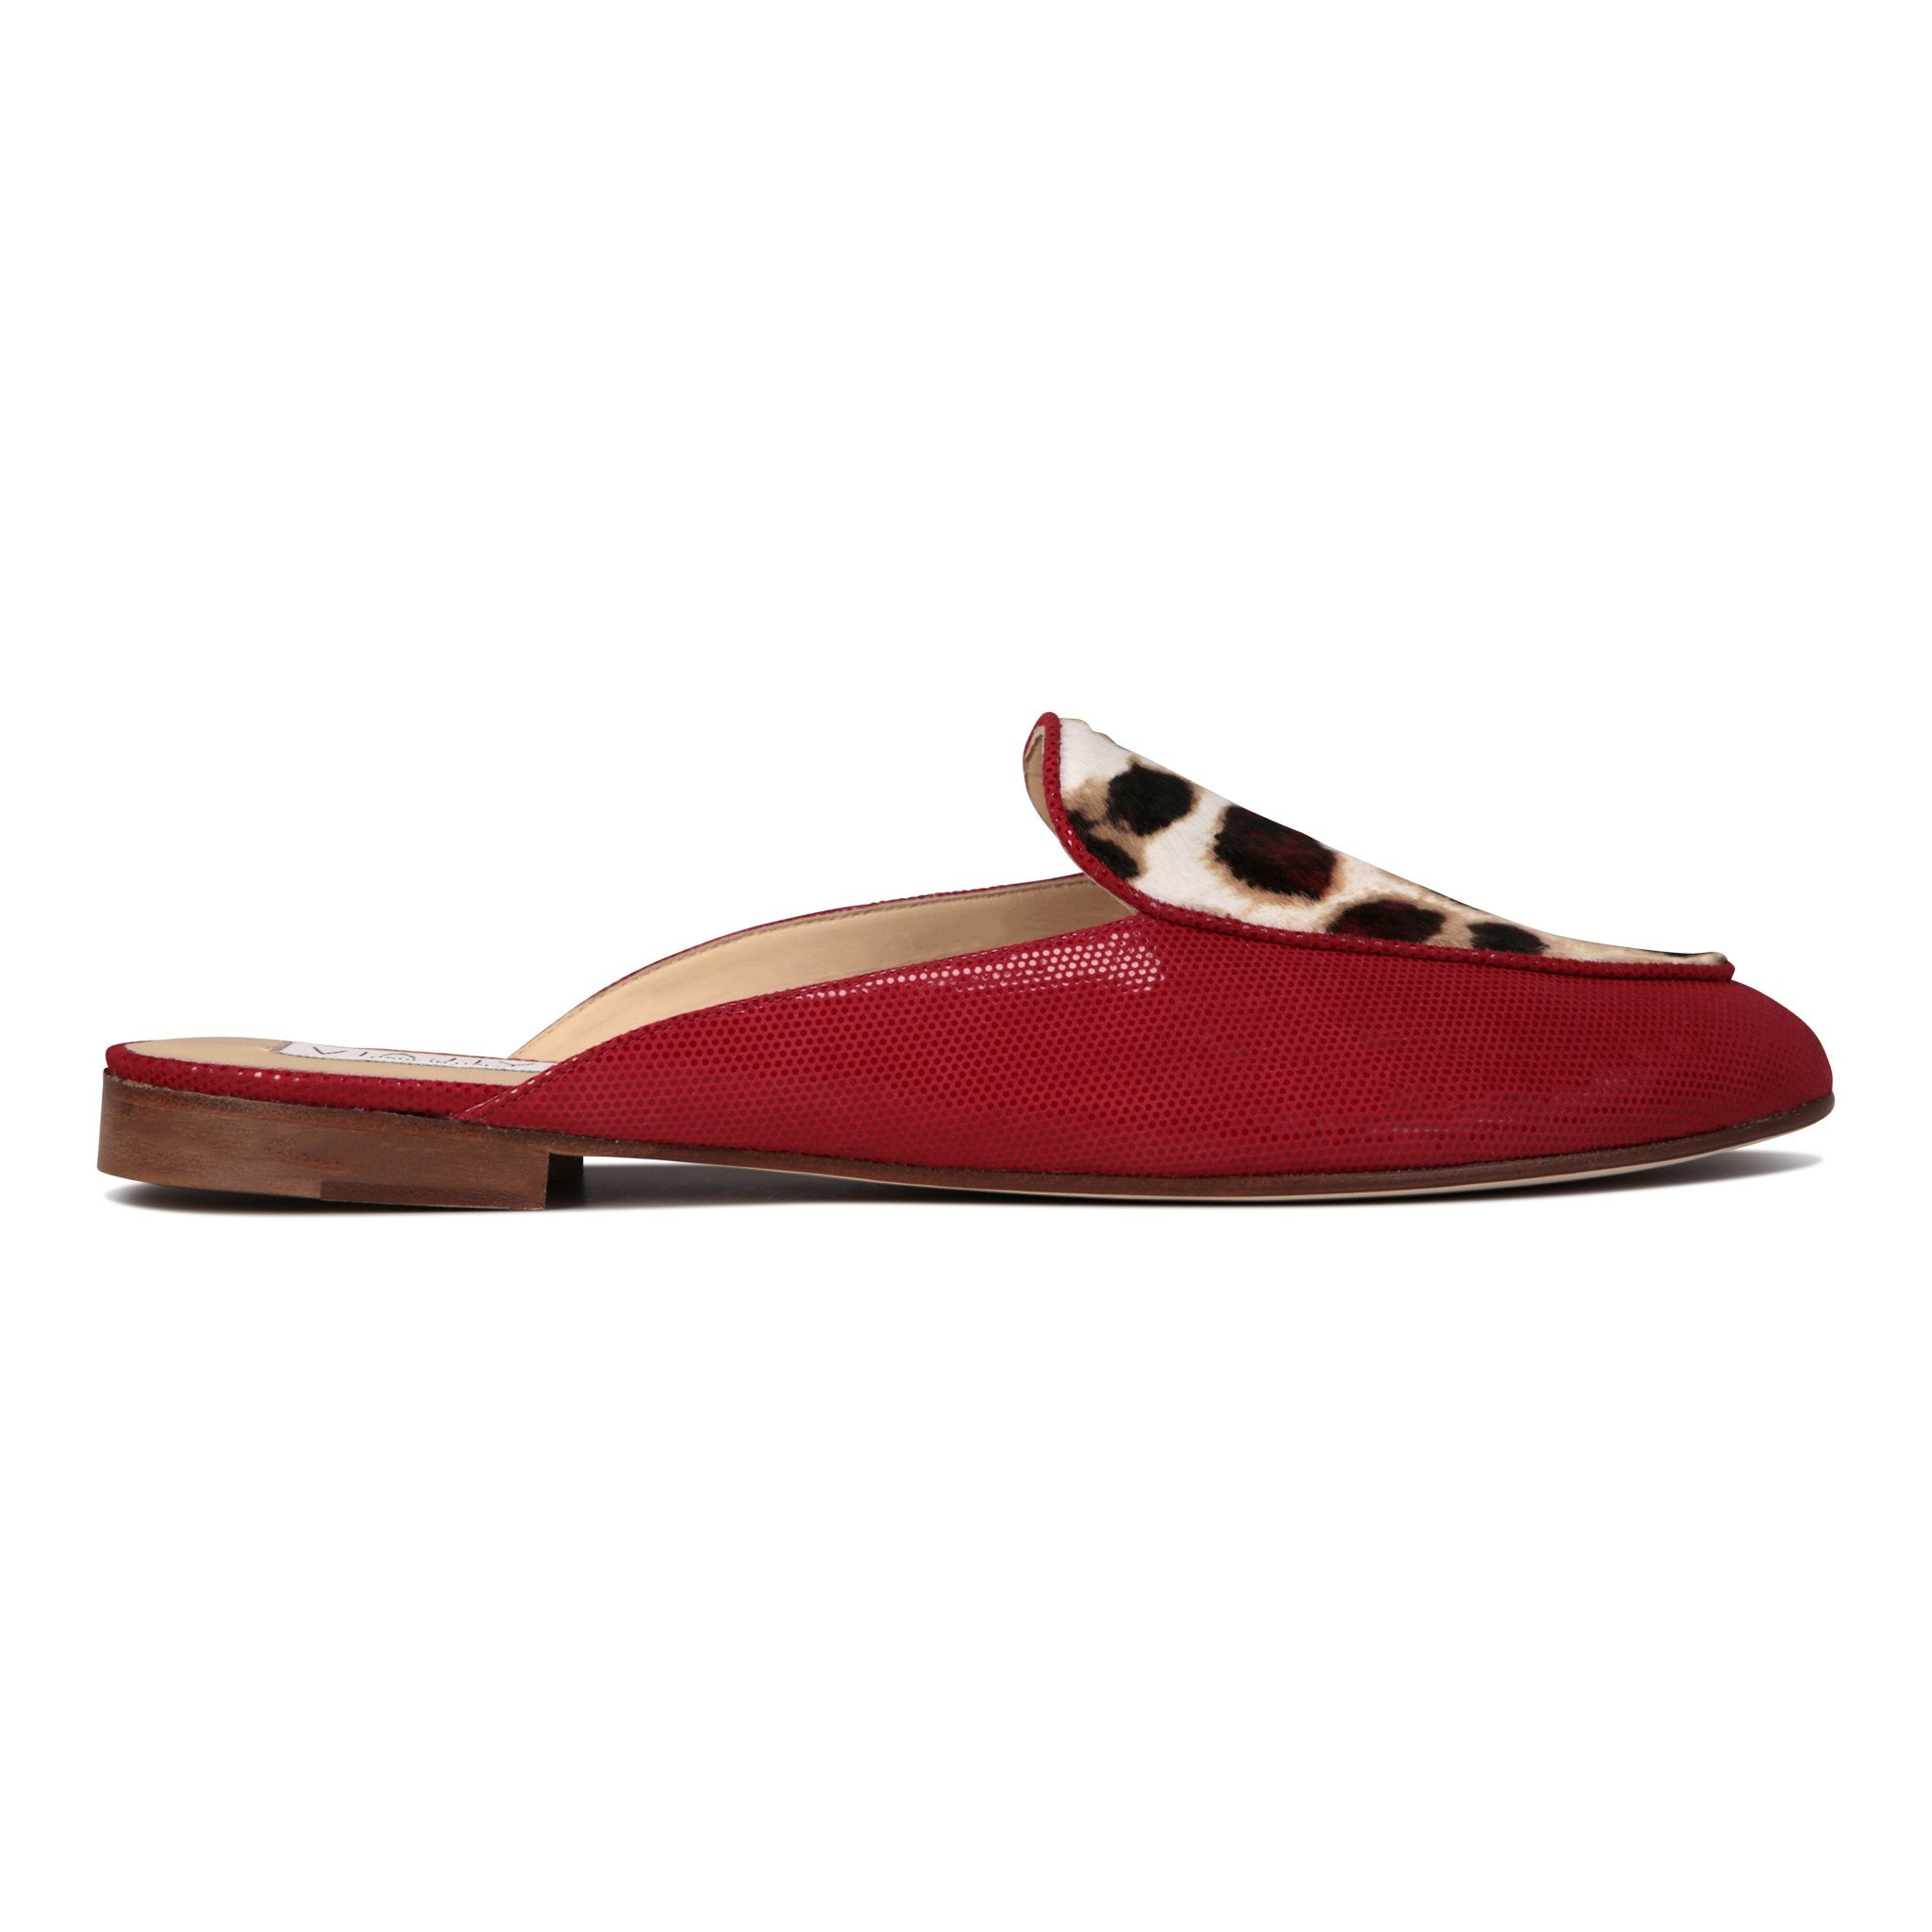 ISEO - Lady Rosso + Calf Hair Red Leopard, VIAJIYU - Women's Hand Made Sustainable Luxury Shoes. Made in Italy. Made to Order.